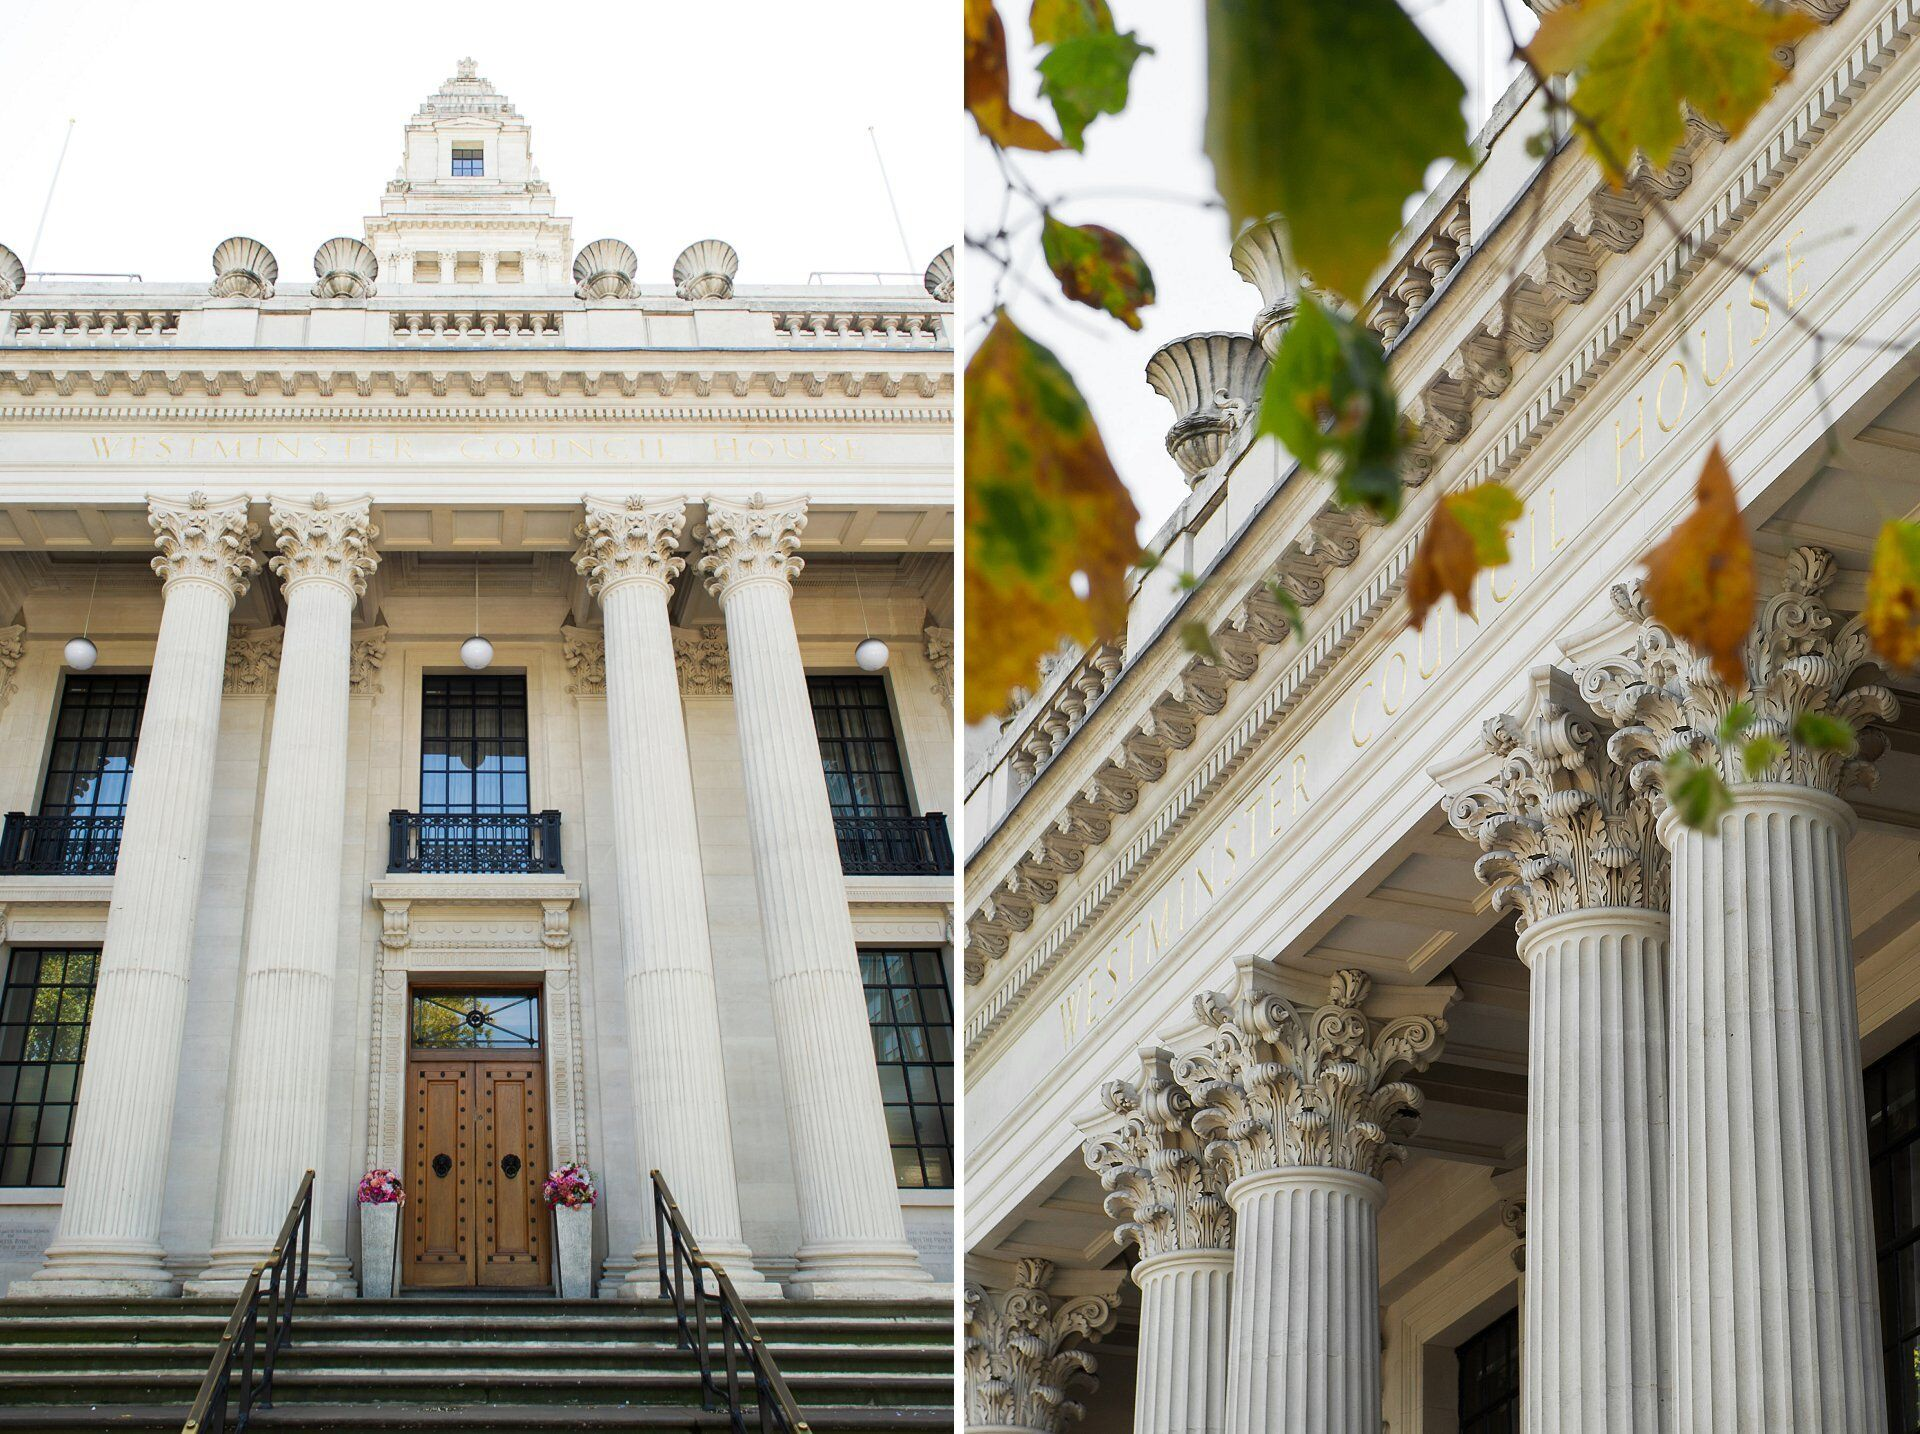 old marylebone town hall on marylebone road near baker street with fluted columns and autumn leaves